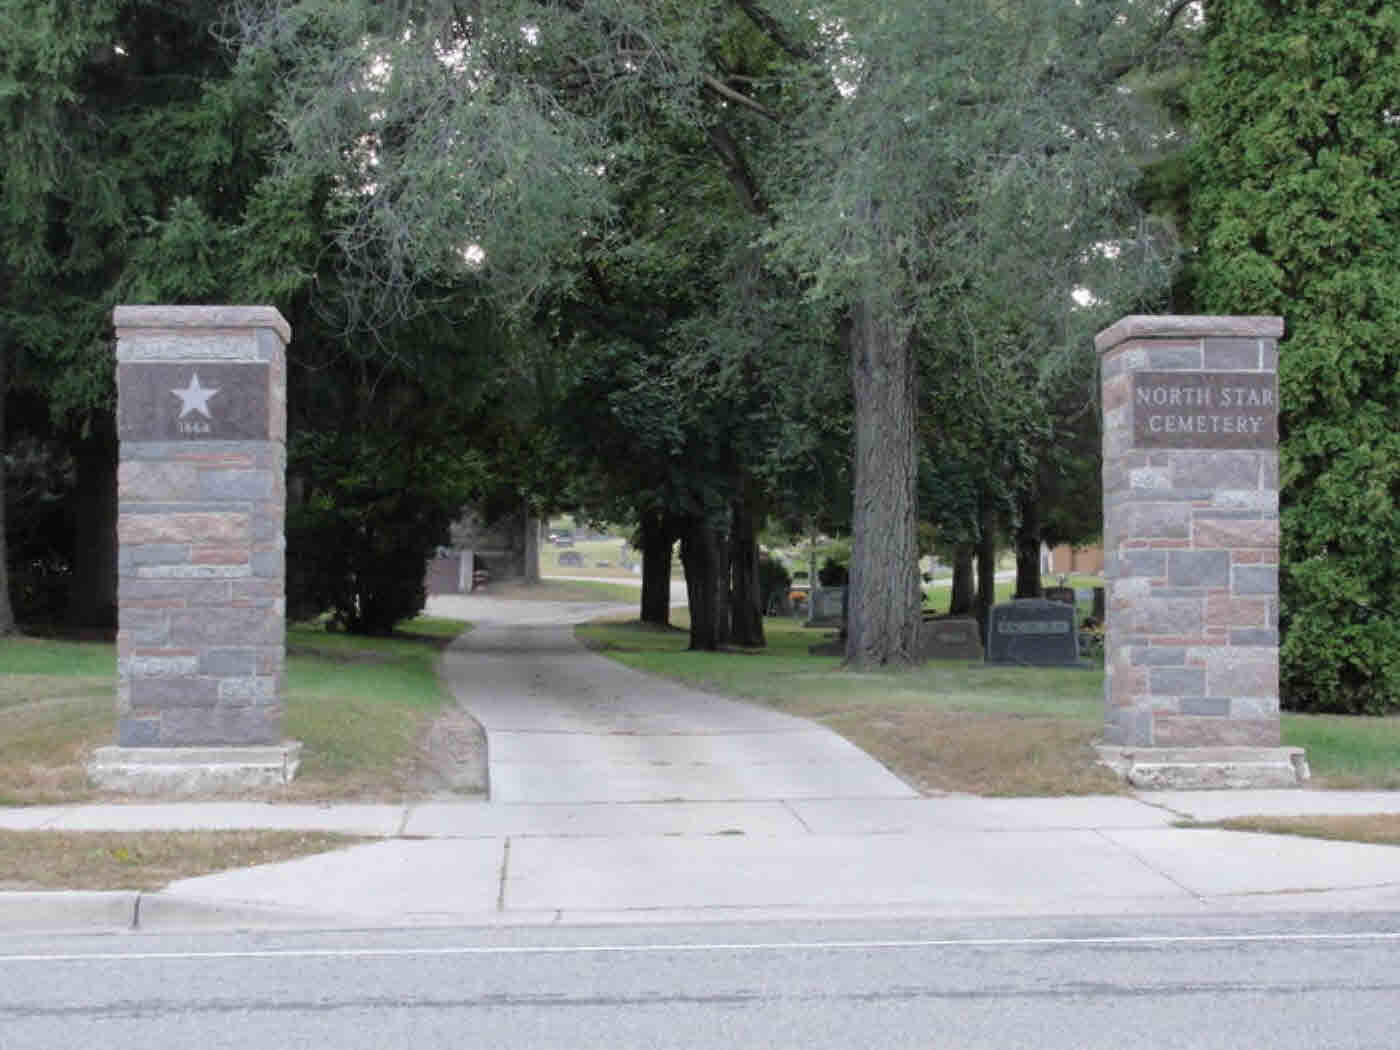 North Star Cemetery